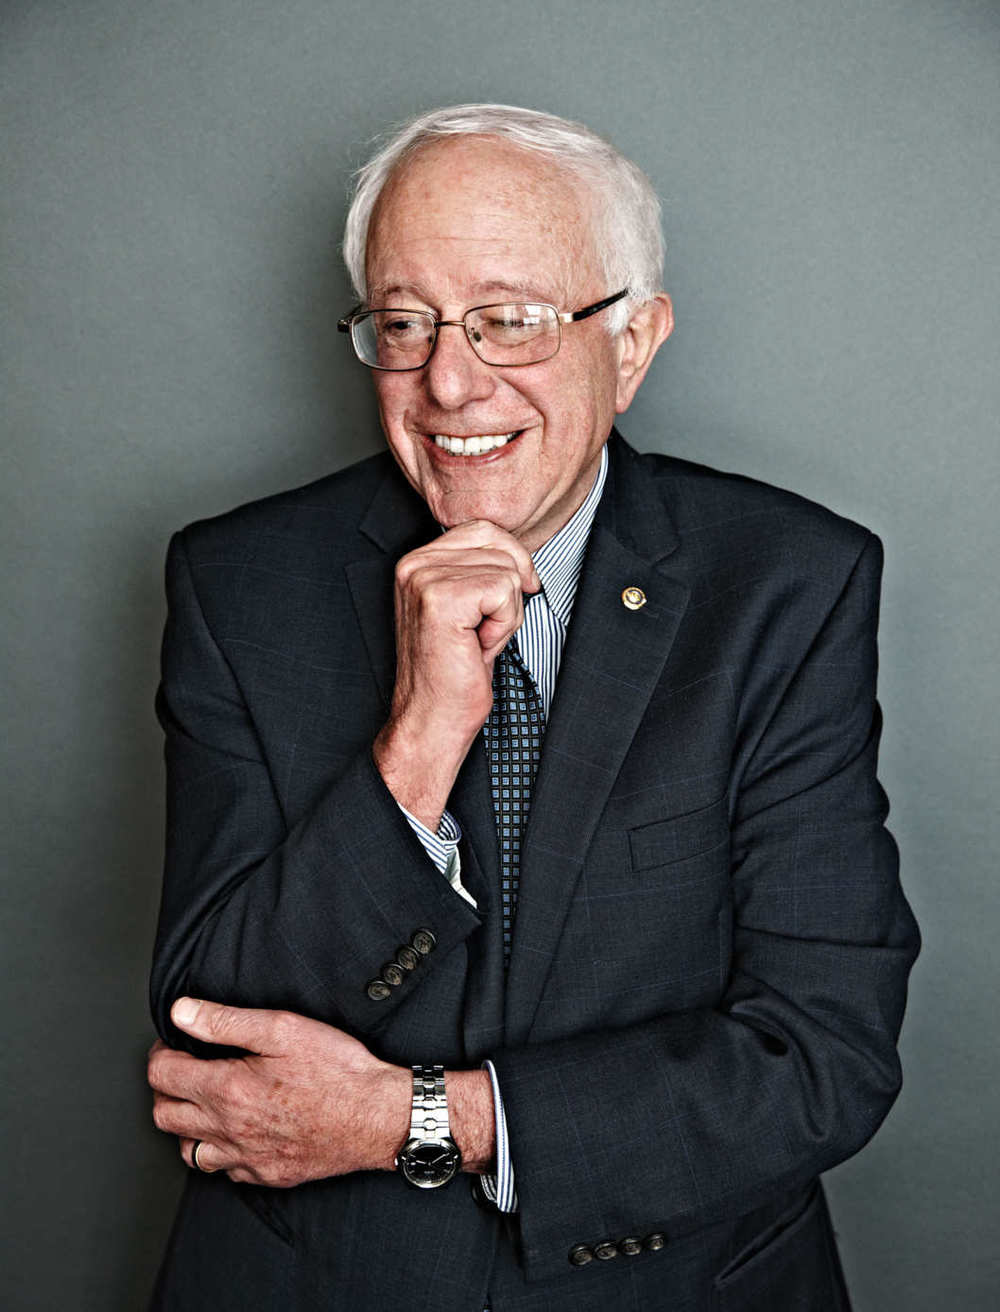 http://www.newyorker.com/news/daily-comment/feeling-the-bern-with-the-youth-vote